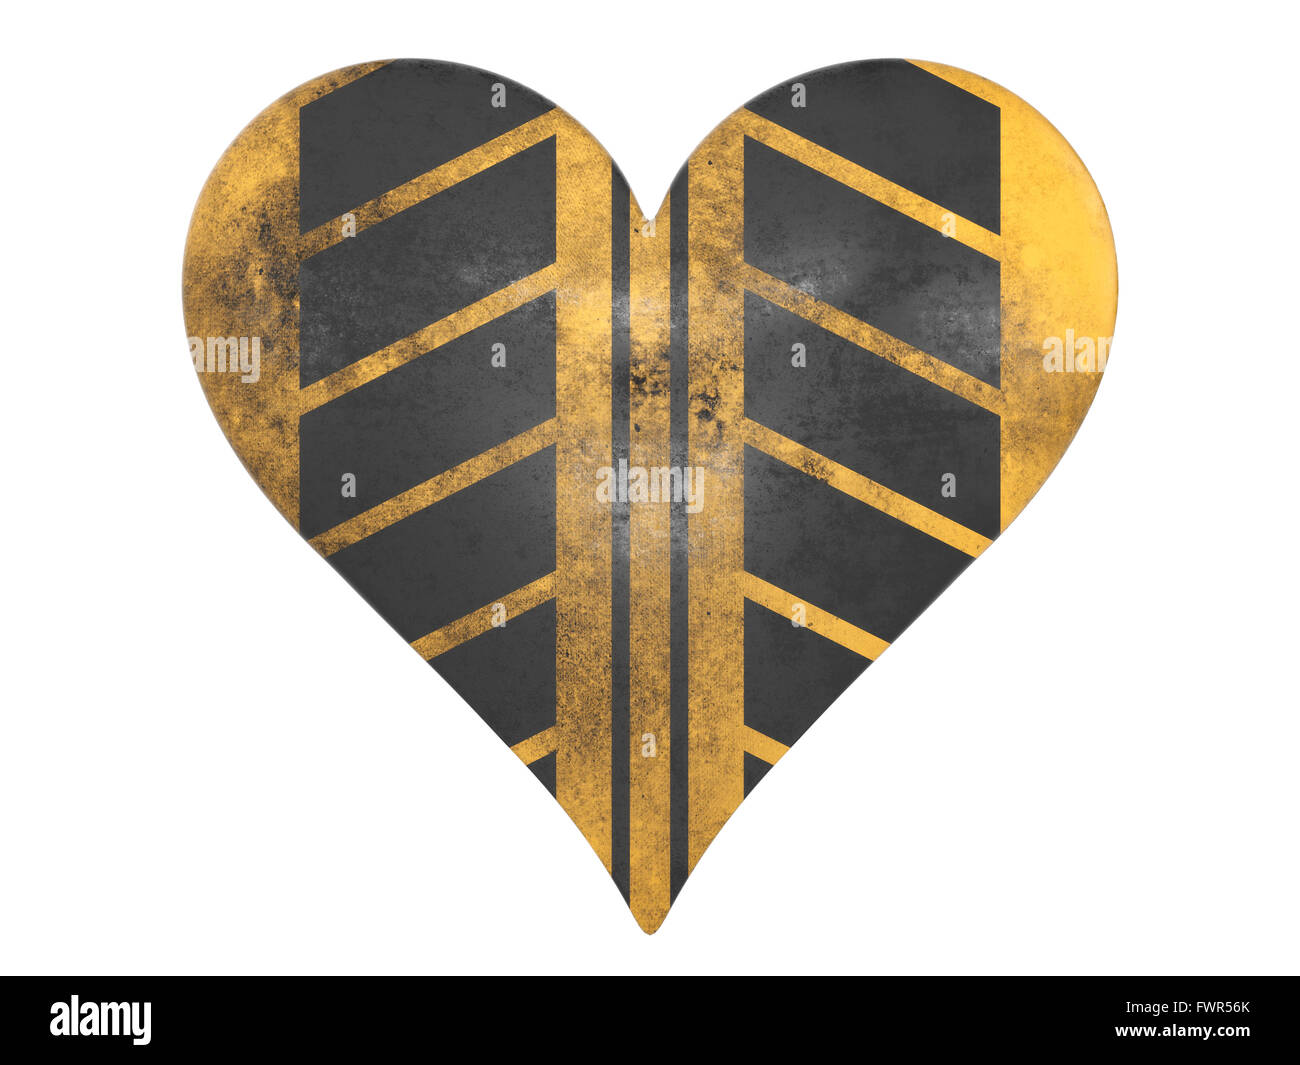 Construction colored tread marked heart symbol isolated on a white background. - Stock Image